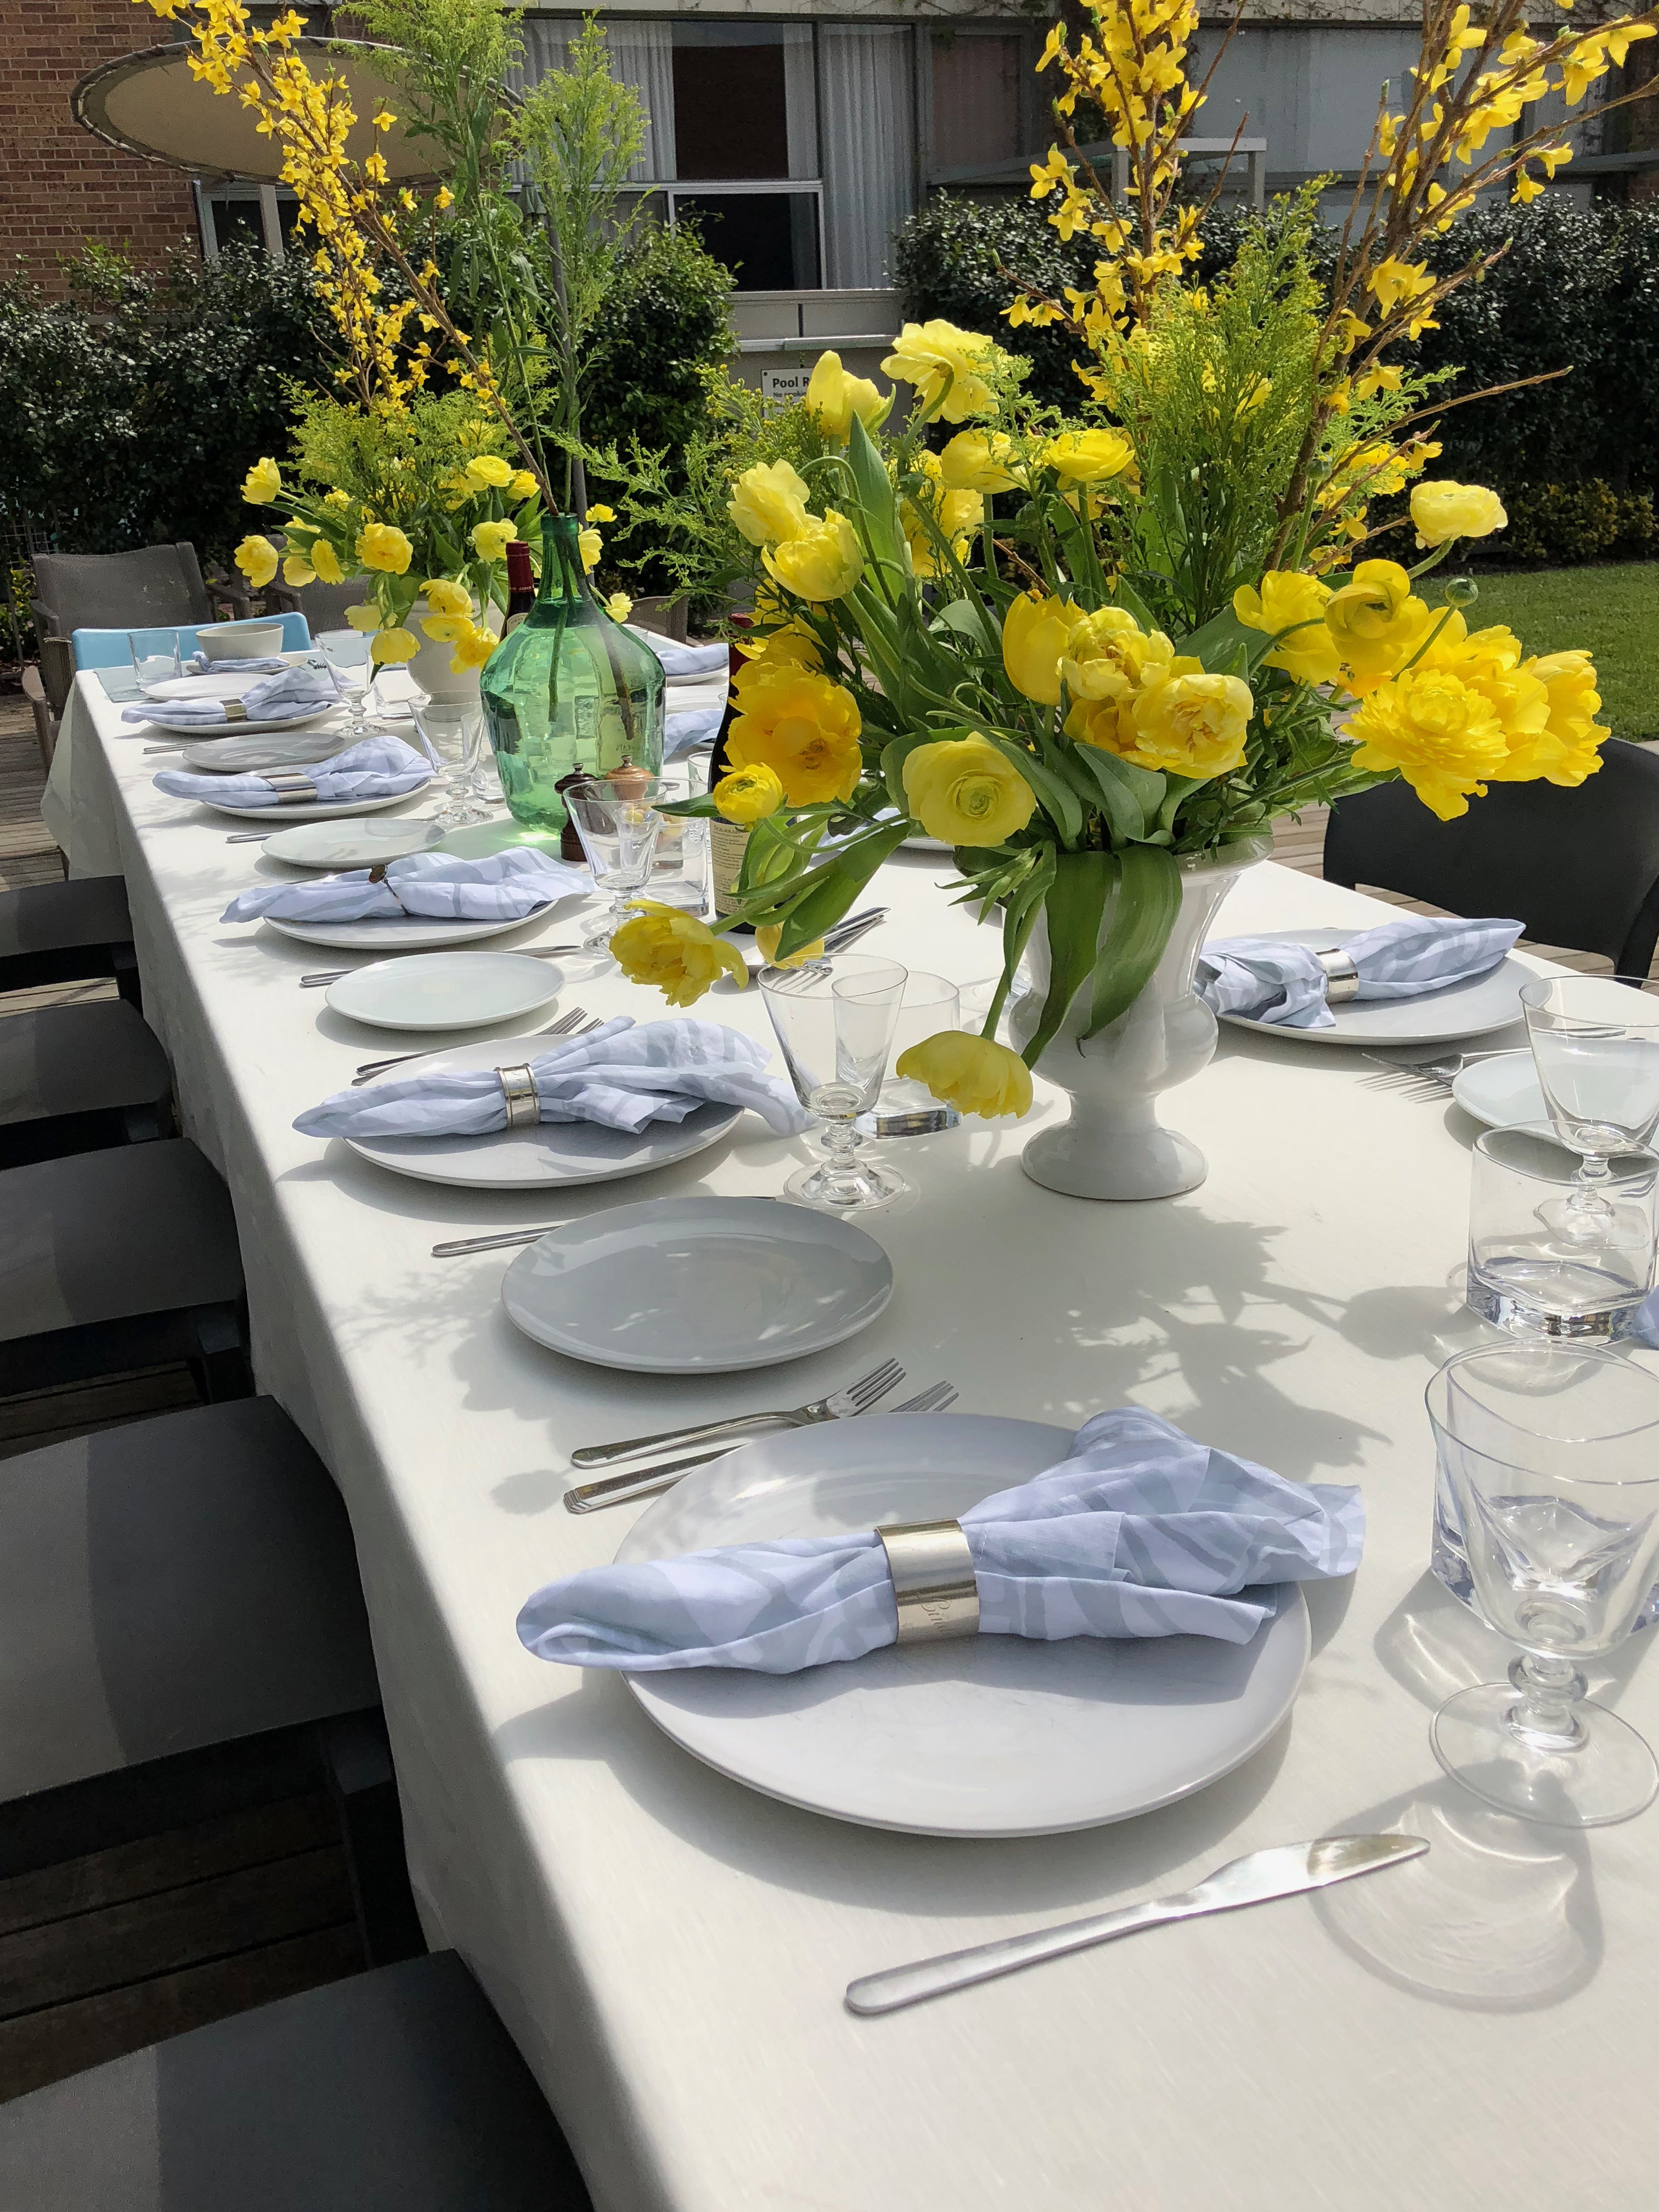 Huddleson Ivory Linen Tablecloth Spring Lunch Outdoor Yellow Floral Arrangements